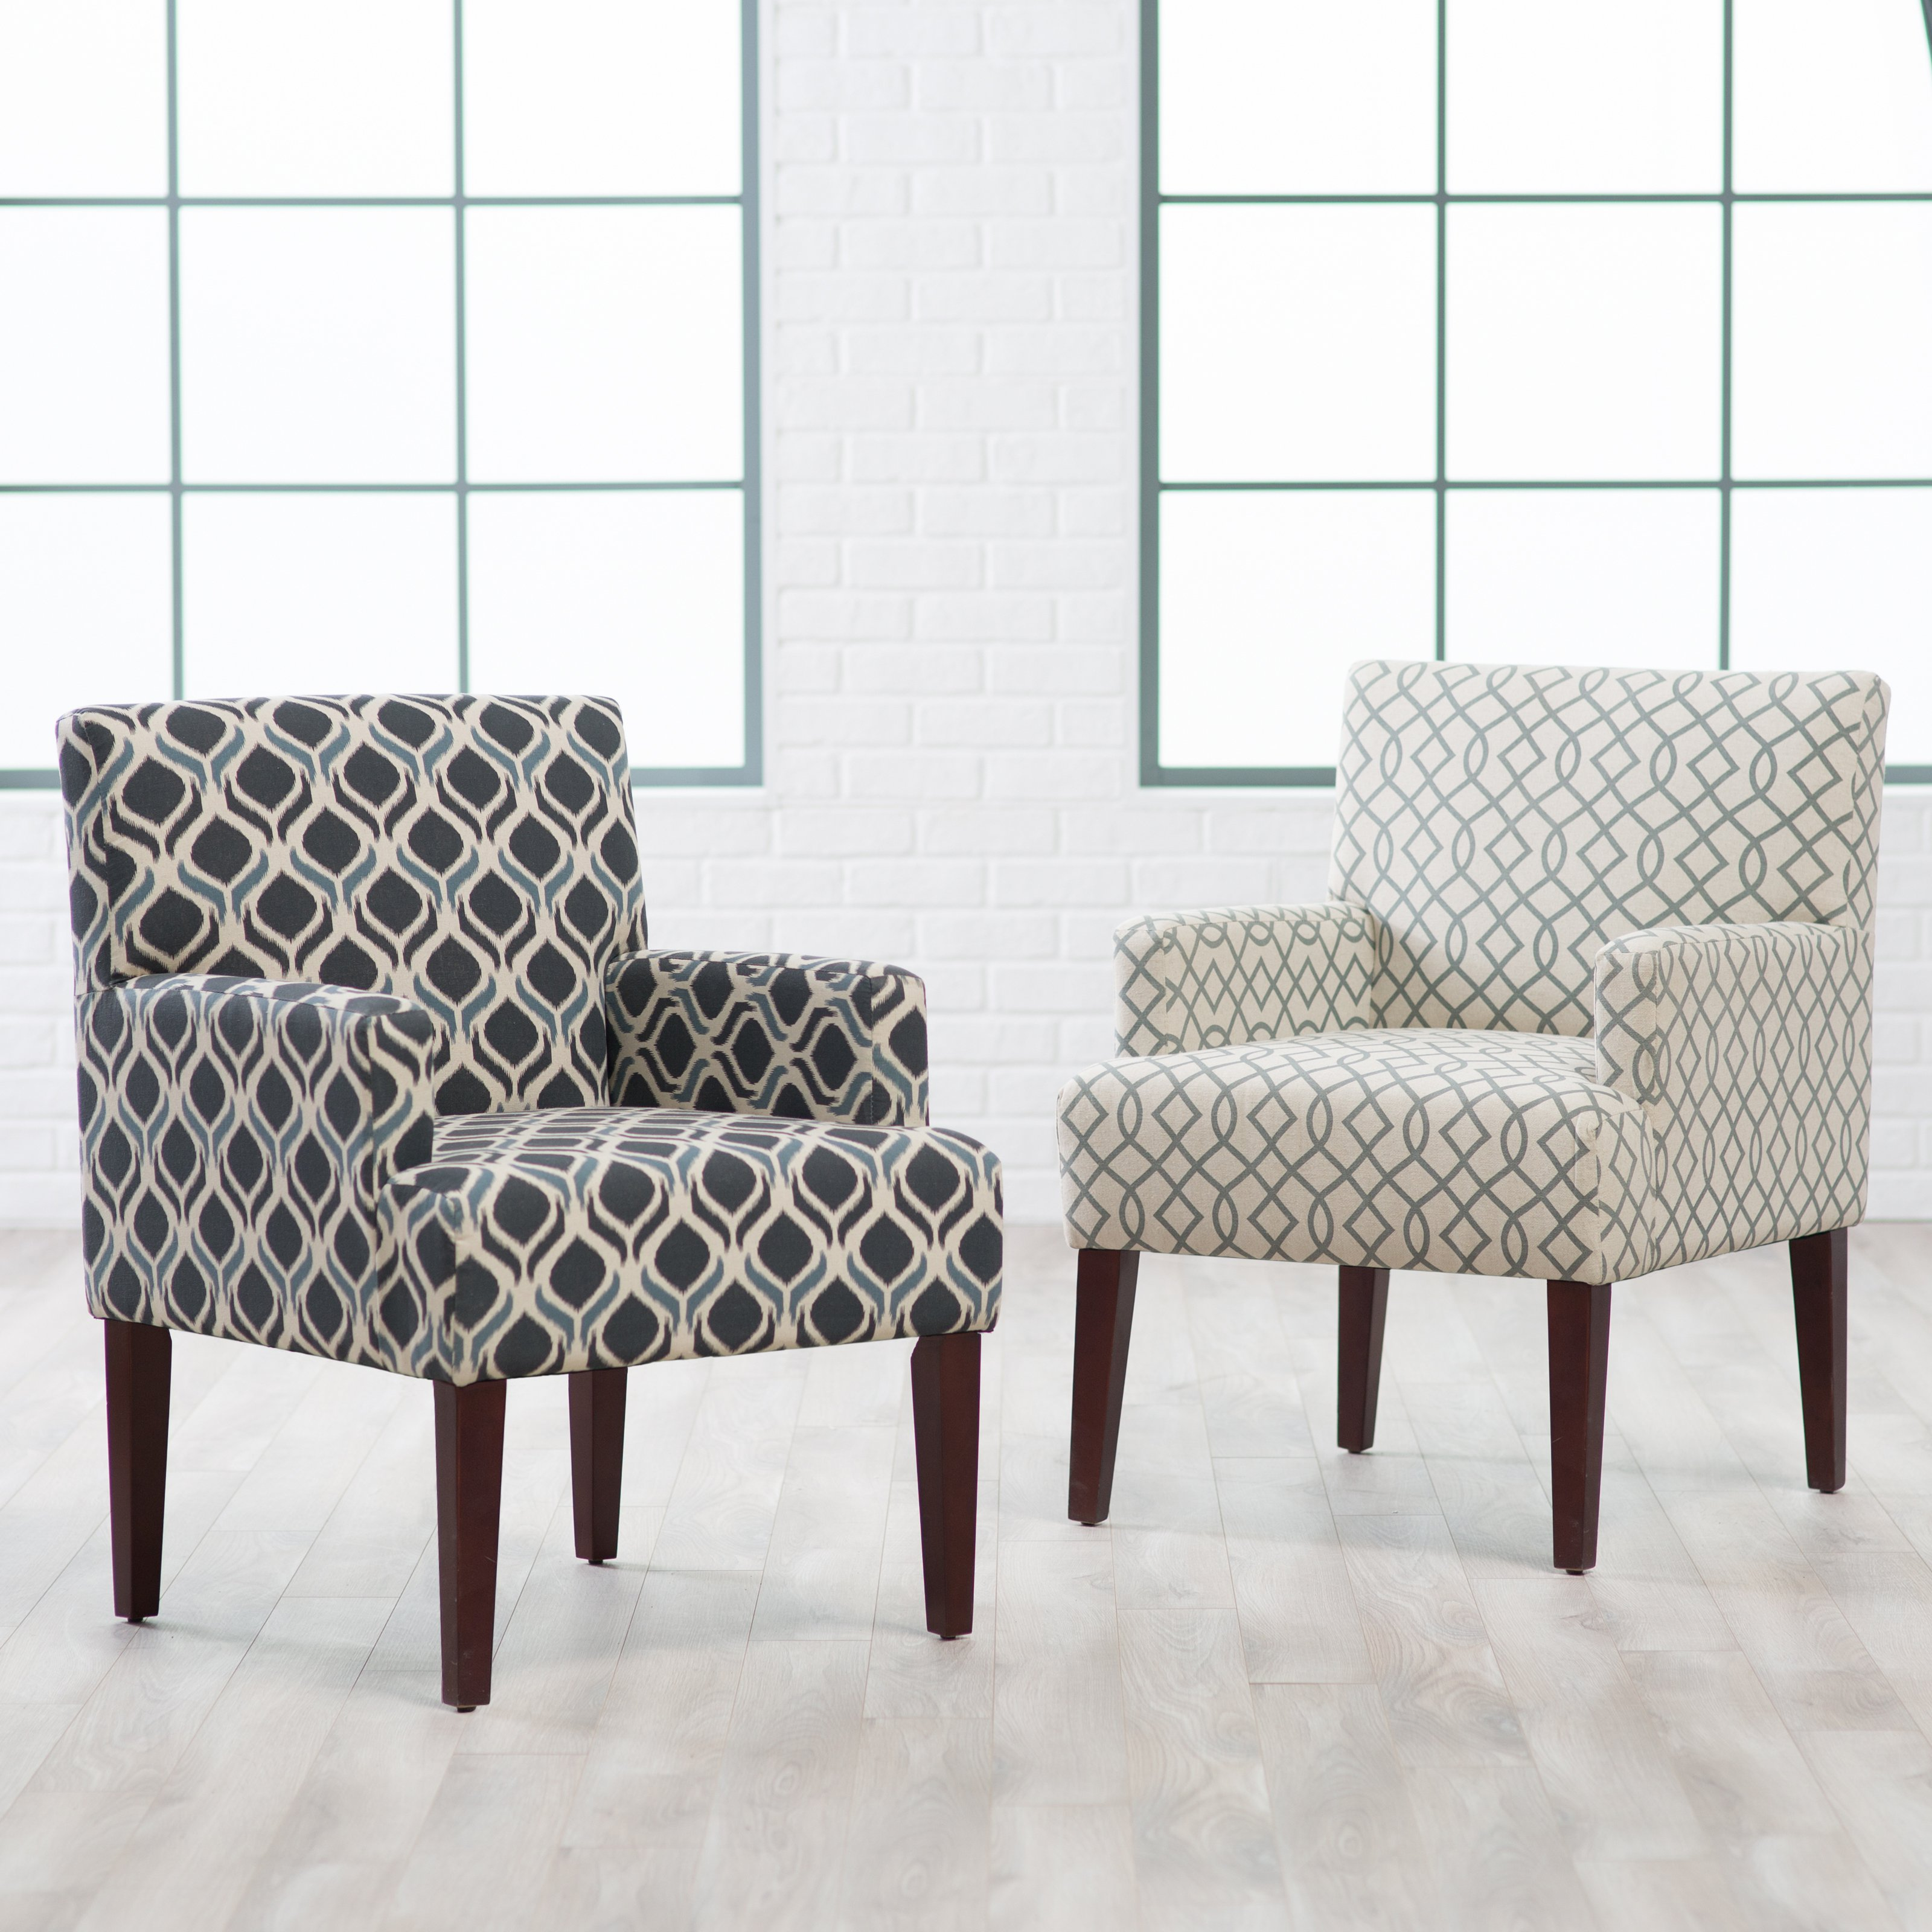 occasional chairs belham living geo accent chair with arms - accent chairs at hayneedle VKRWQGI